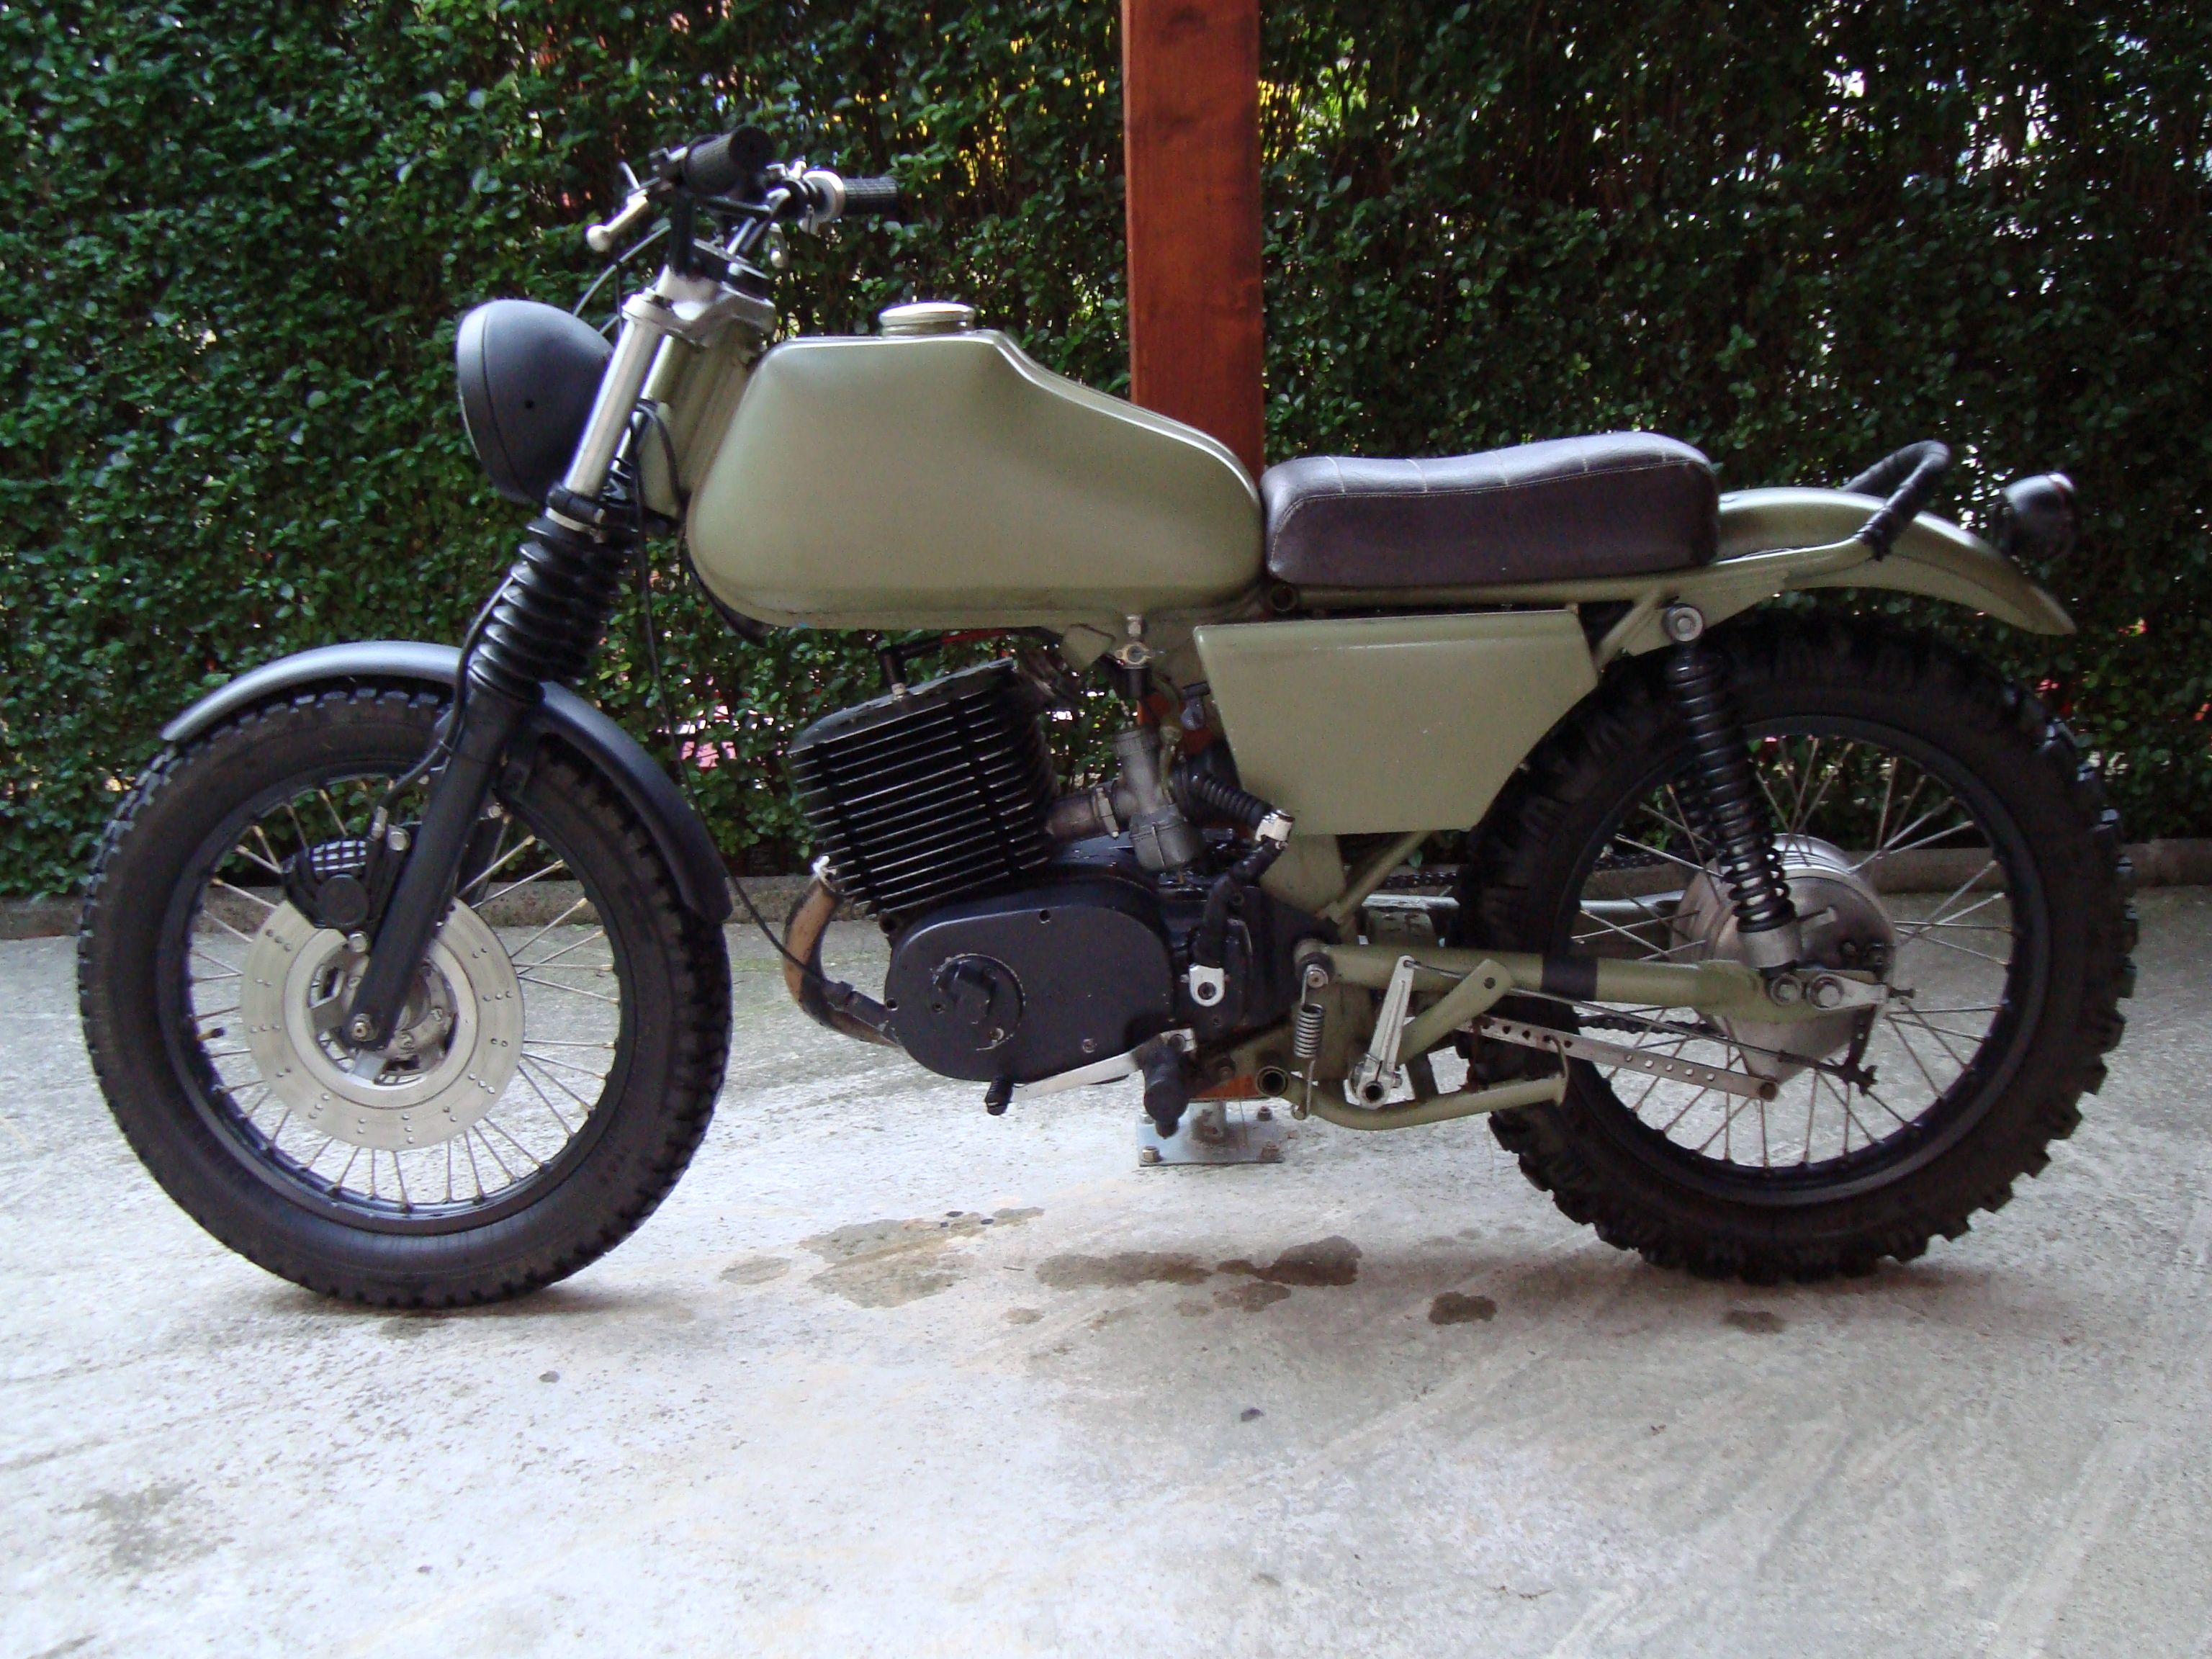 mz etz 250 scrambler motorcycles from saxony pinterest scrambler mopeds and scooters. Black Bedroom Furniture Sets. Home Design Ideas